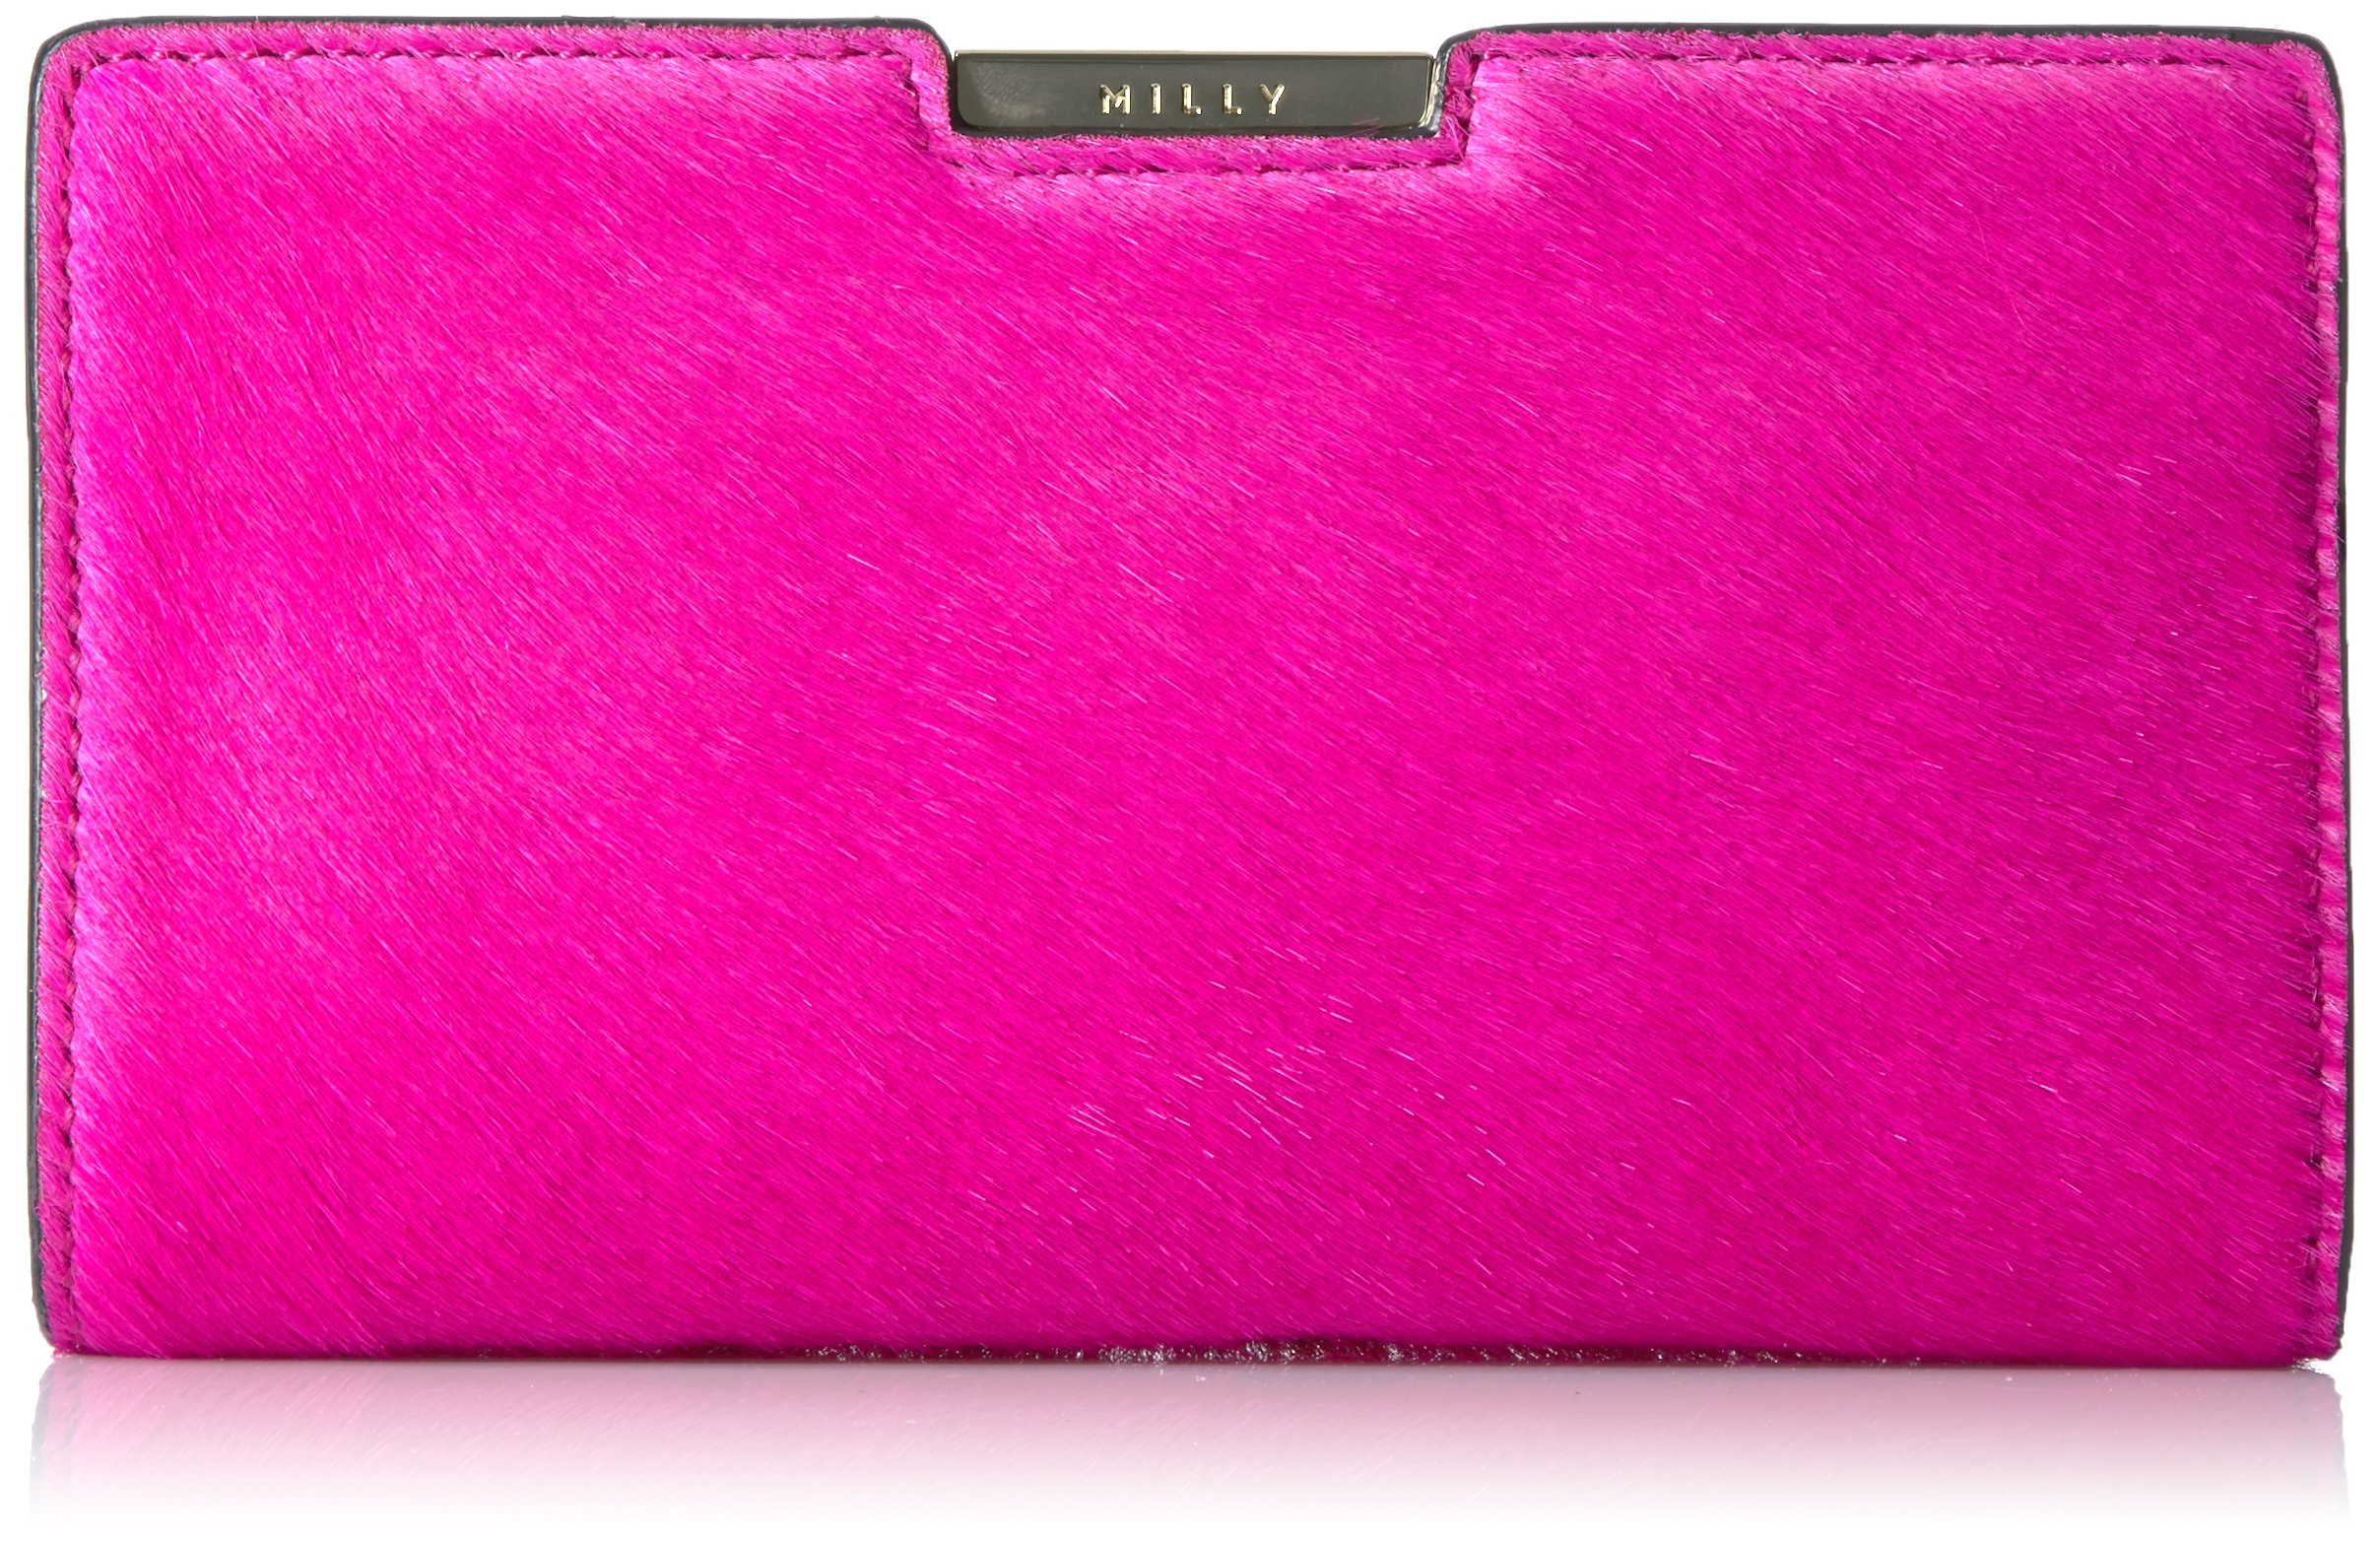 MILLY Haircalf Small Frame Clutch by MILLY